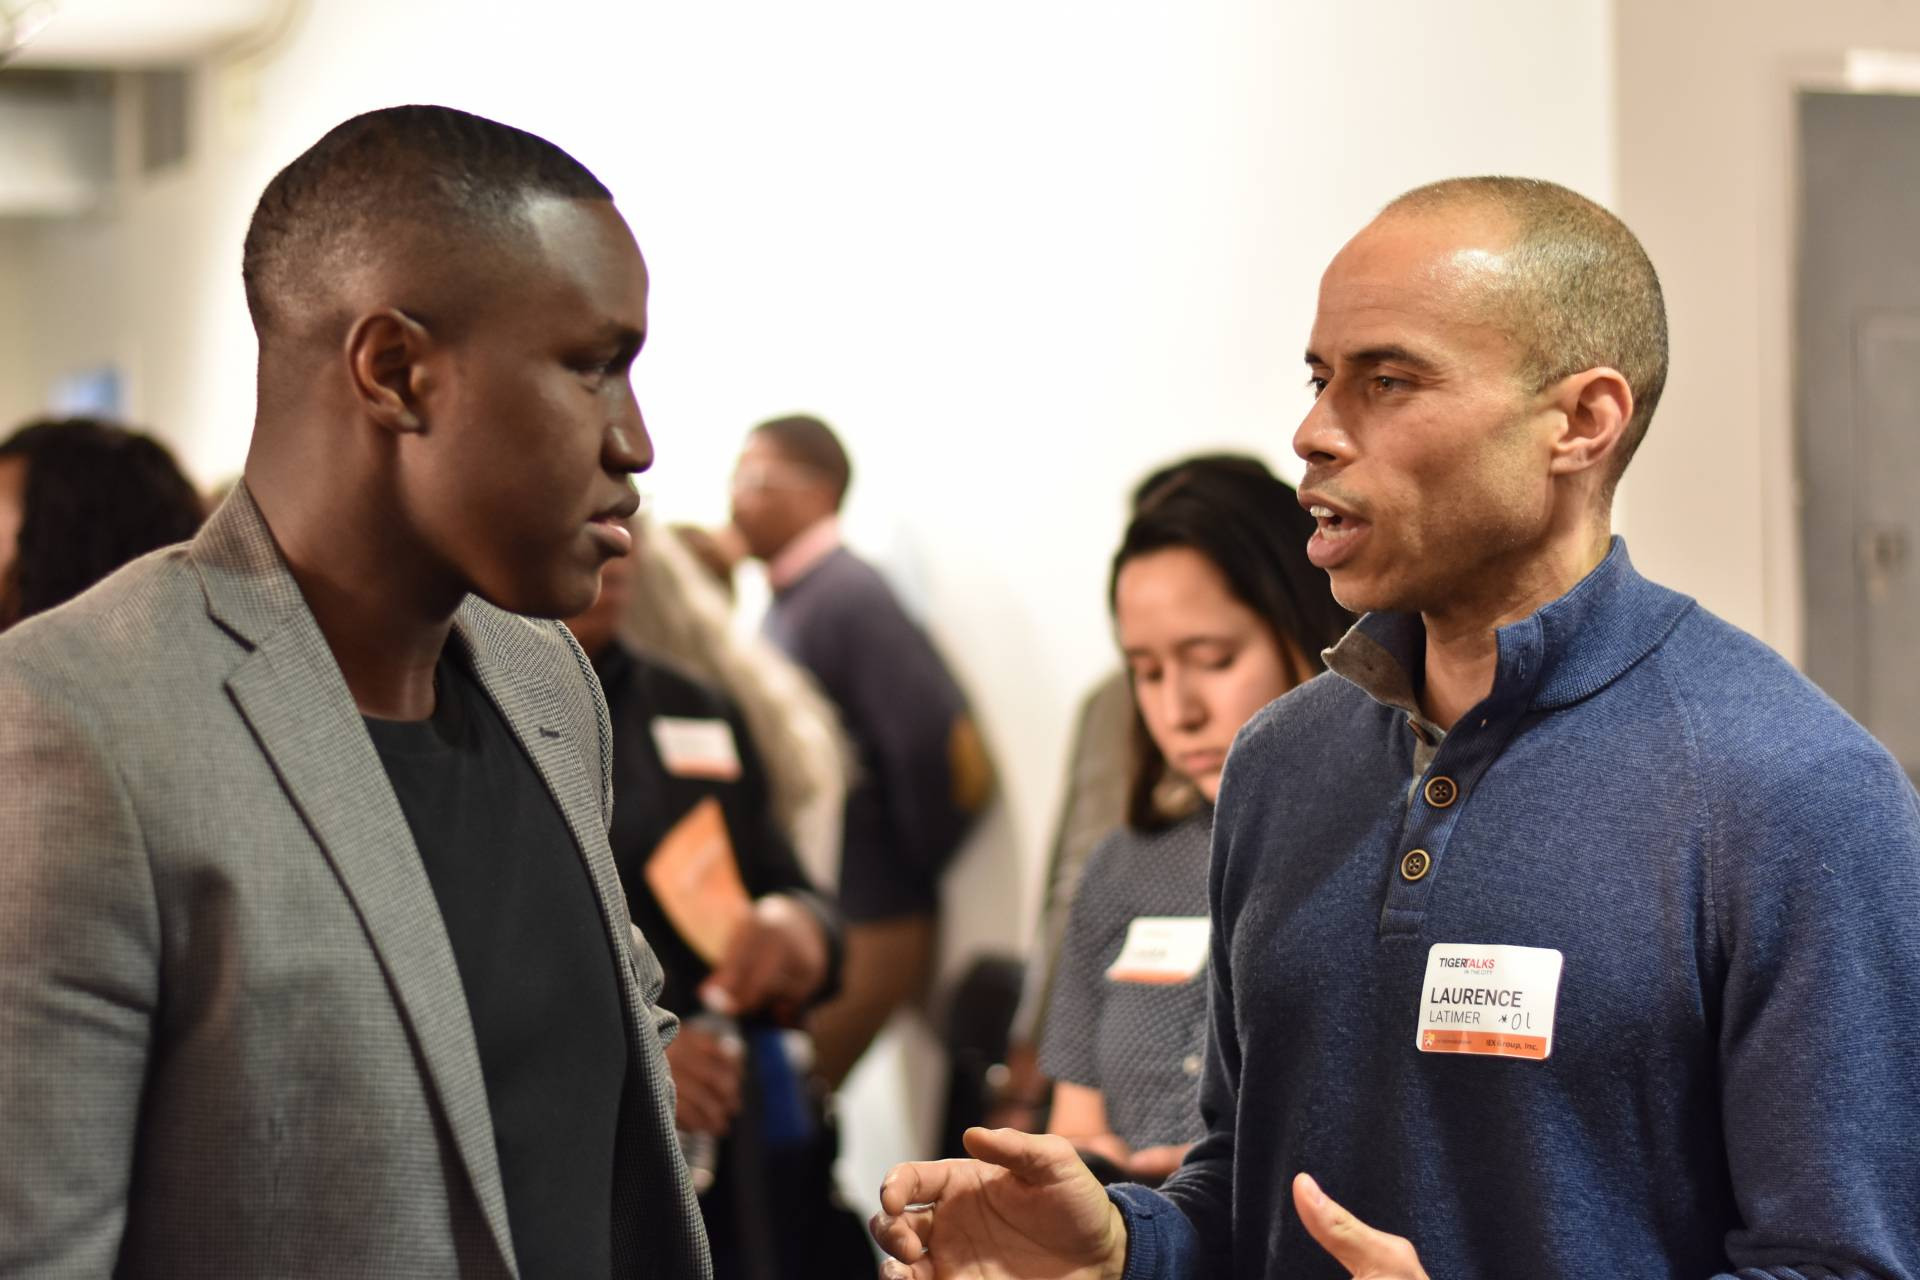 Two men have a conversation at the Tiger Talks conference